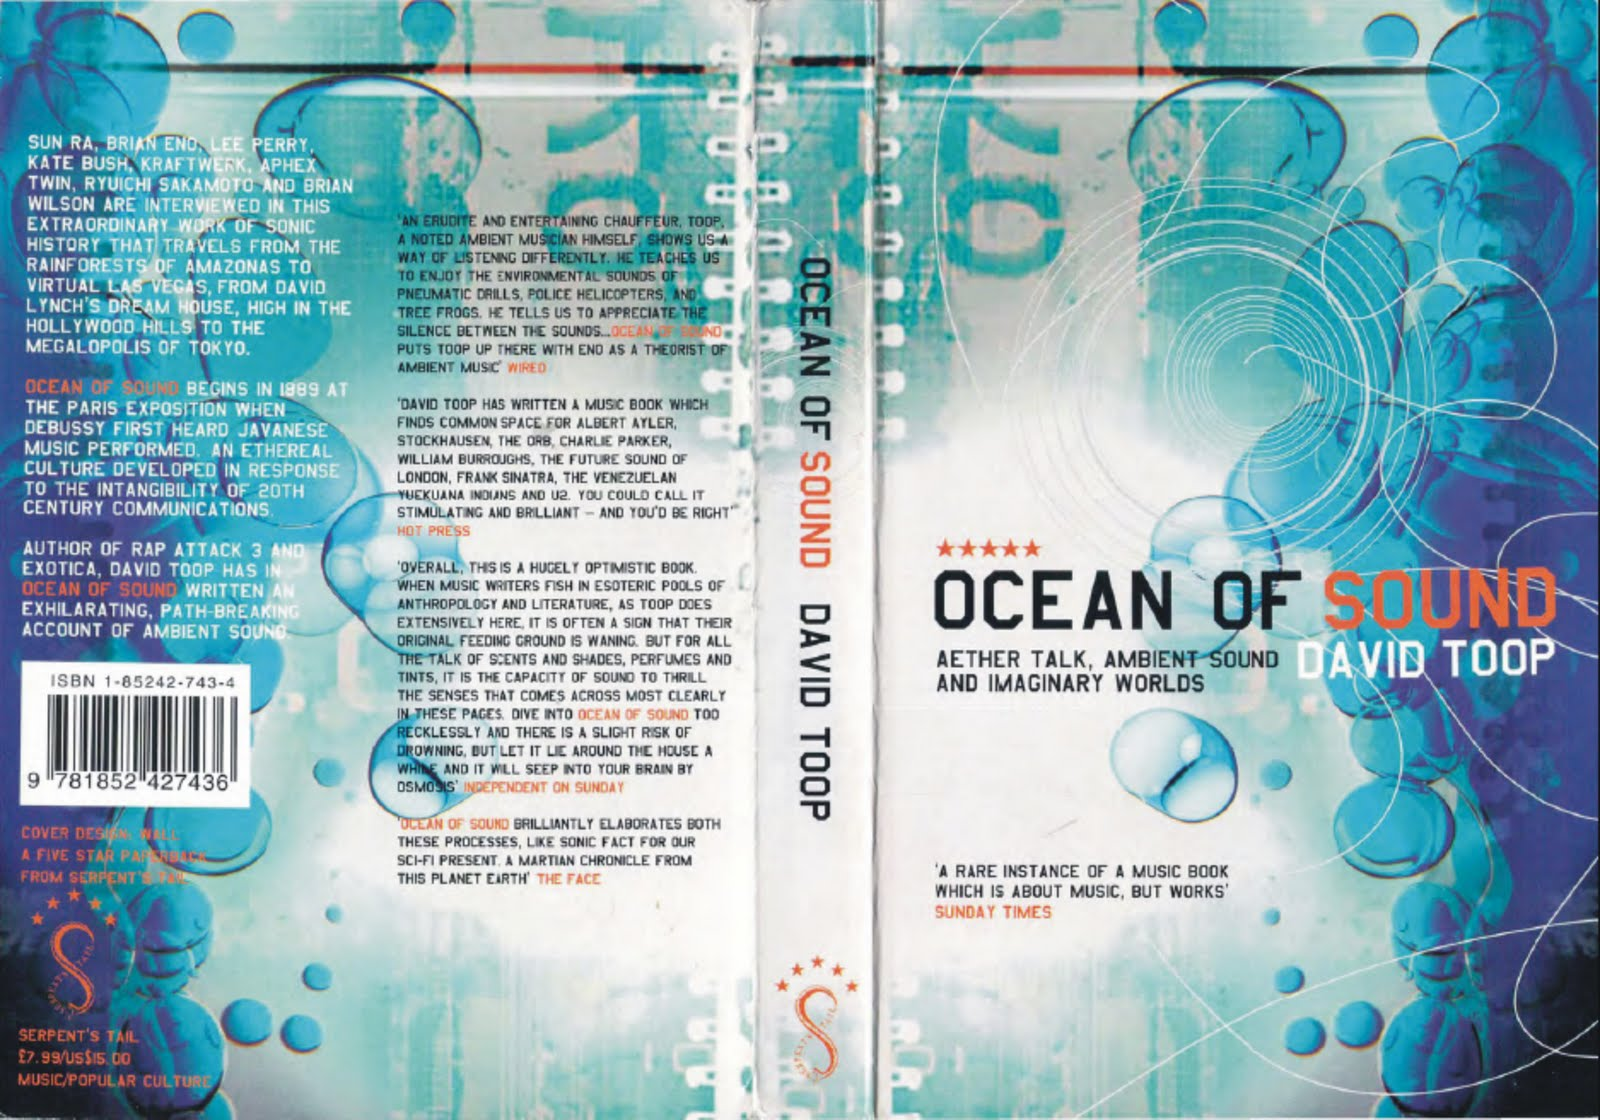 http://www.amazon.com/Ocean-Sound-David-Toop/dp/1852427434/ref=sr_1_2?ie=UTF8&qid=1395170398&sr=8-2&keywords=david+toop